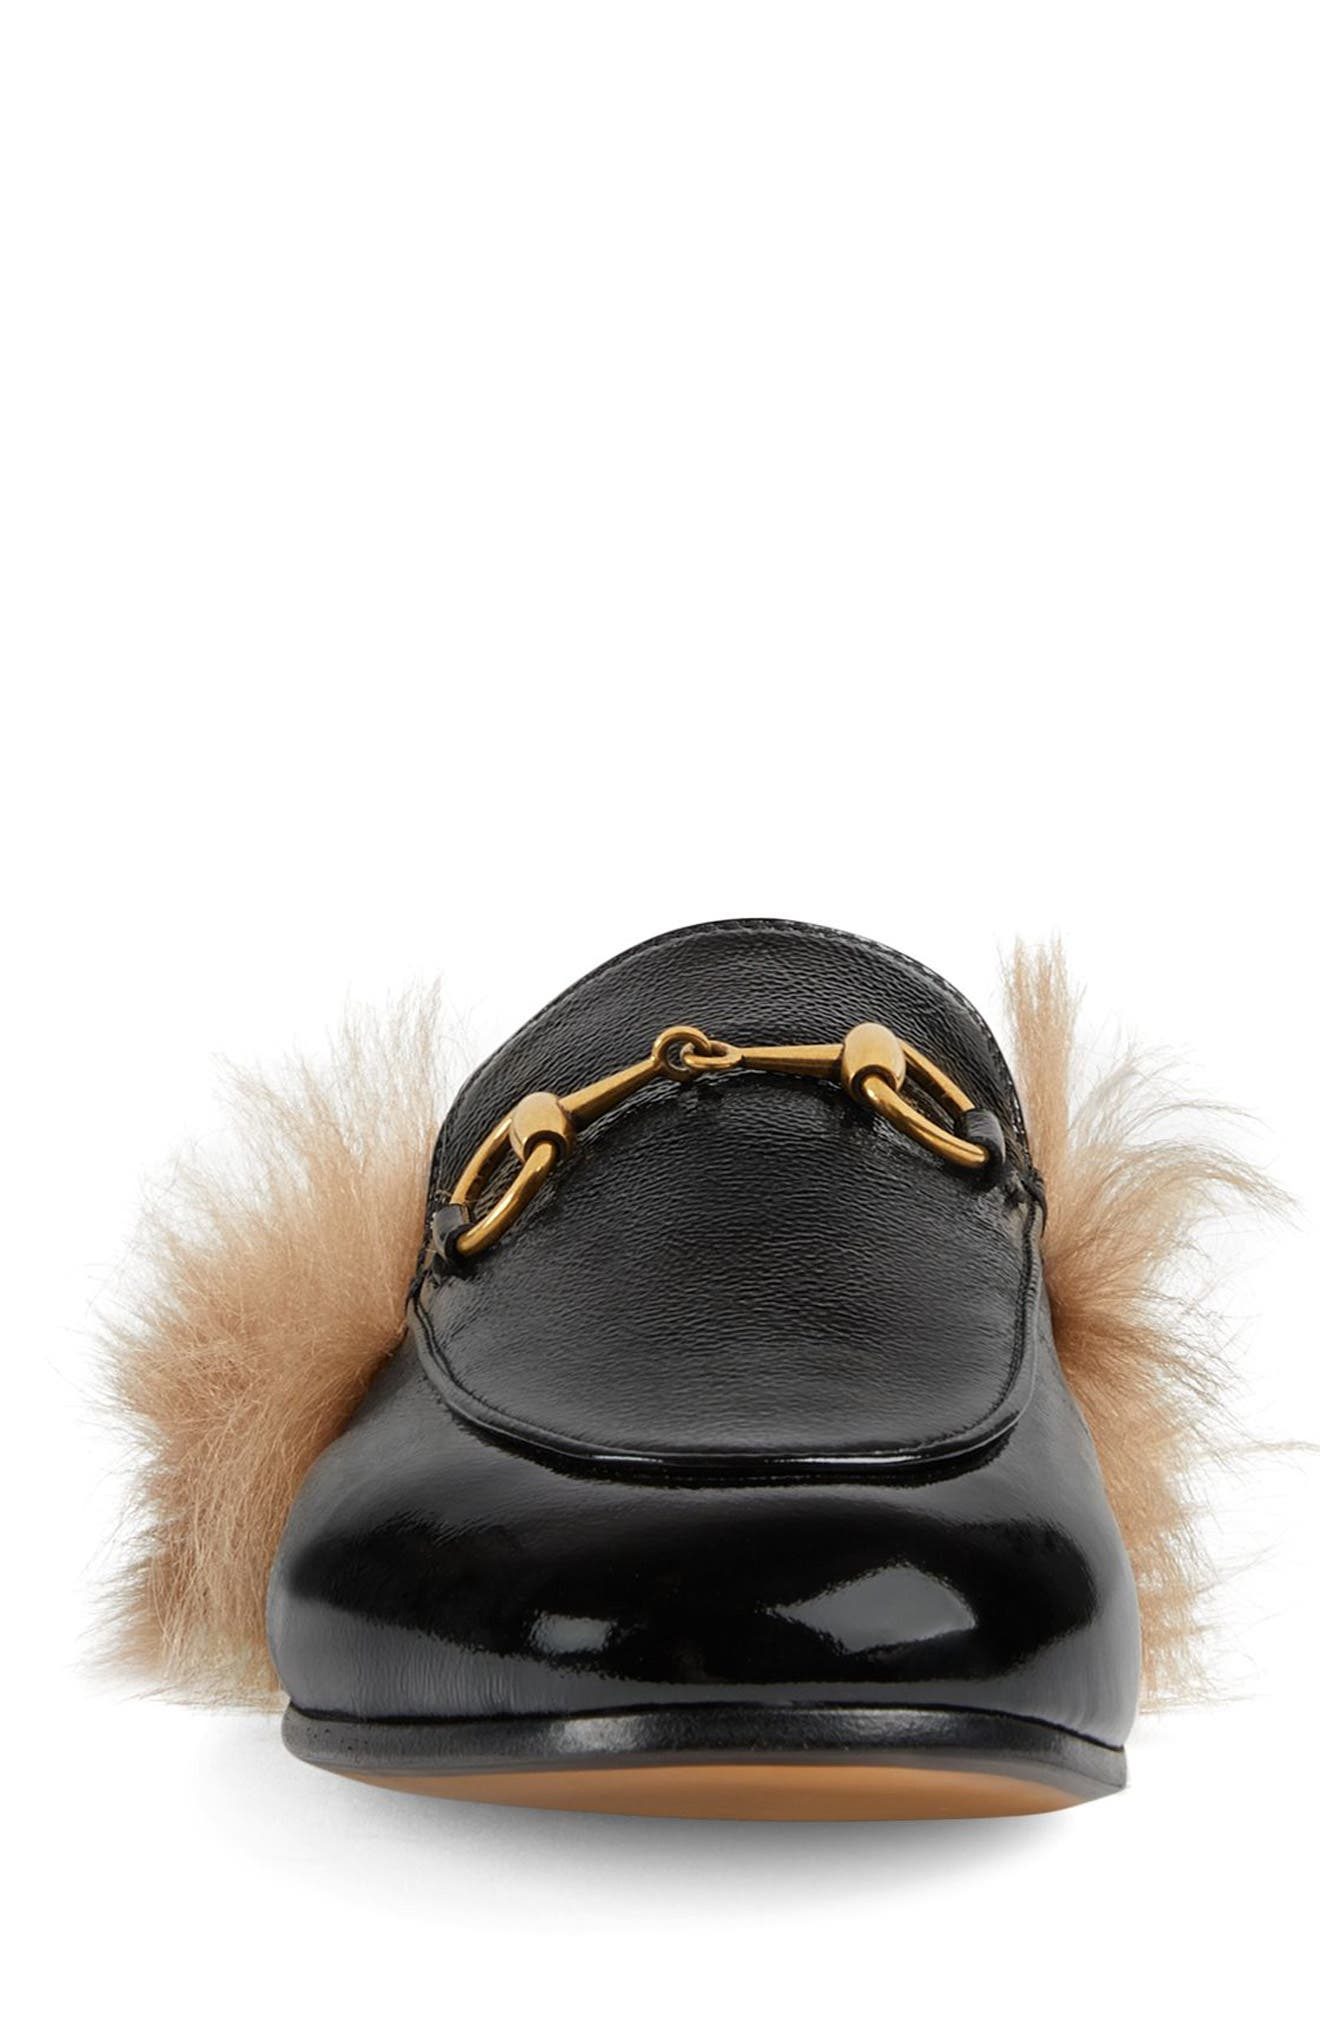 GUCCI, Princetown Genuine Shearling Loafer Mule, Alternate thumbnail 3, color, BLACK PATENT